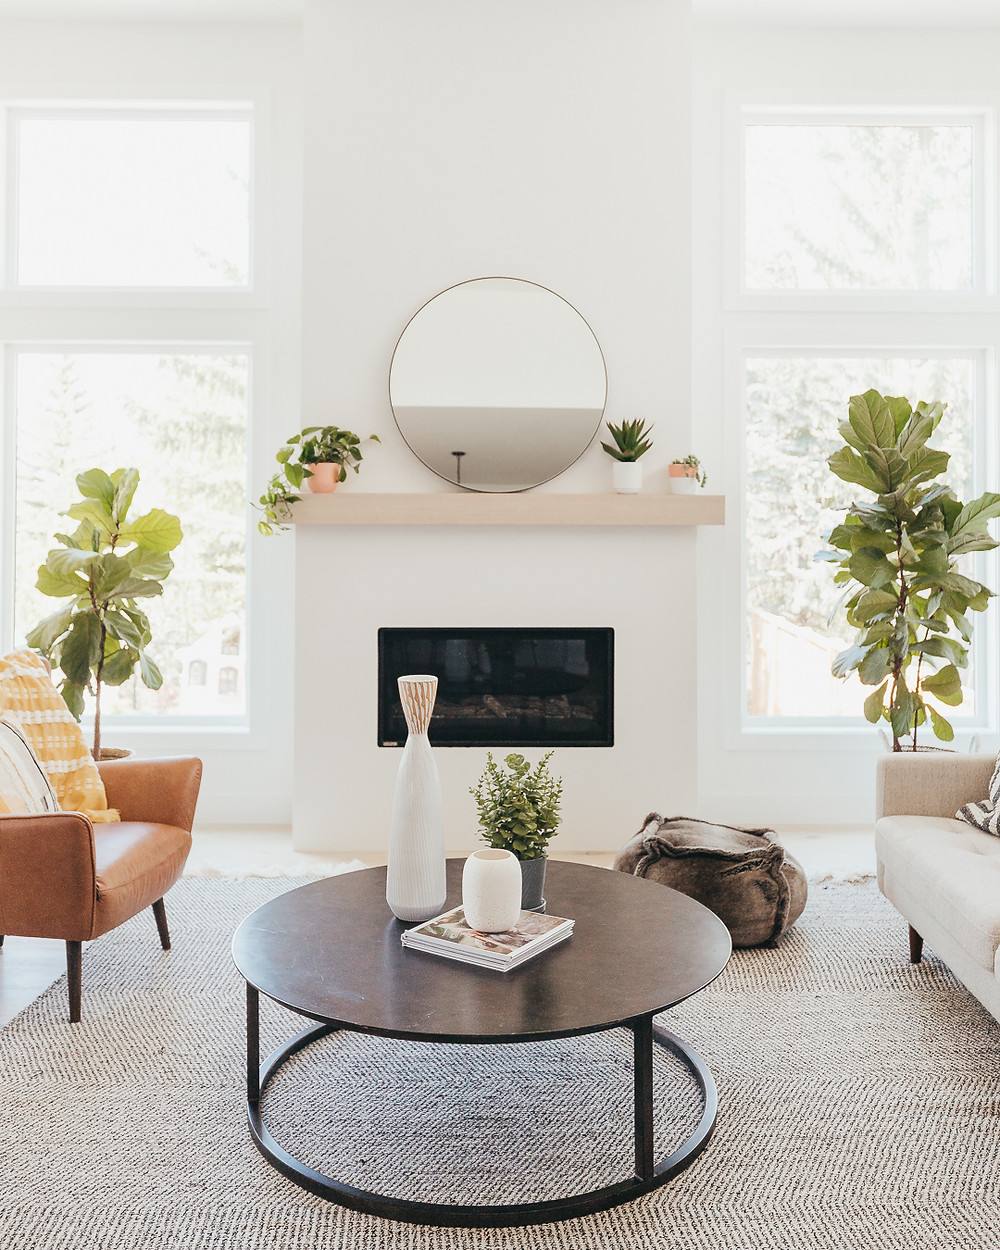 White walls natural light wood mantle with round mirror and three plants on mantle ledge fiddle leaf fig in baskets leather armchair round wood coffee table with magazines and vase and plant cream sofa with faux fur pouf on floor